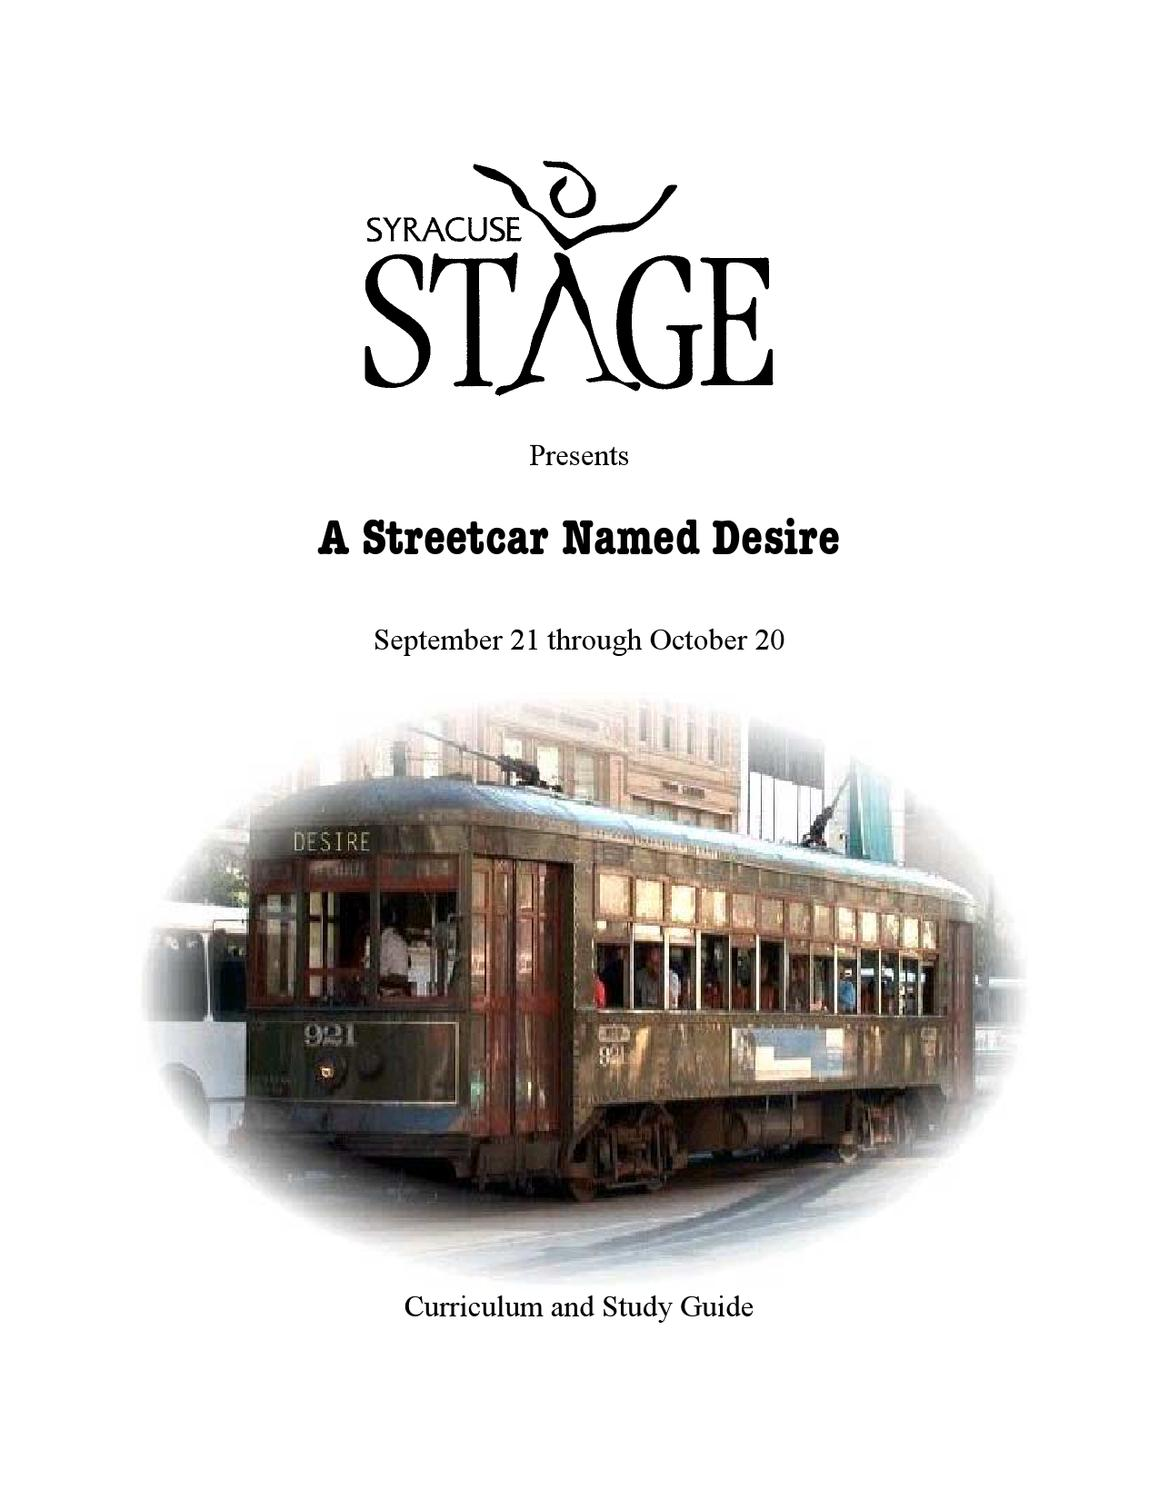 streetcar essay Free essays from bartleby | illusions and fantasy in tennessee williams' a streetcar named desire 'a streetcar named desire', by tennessee williams, explores.